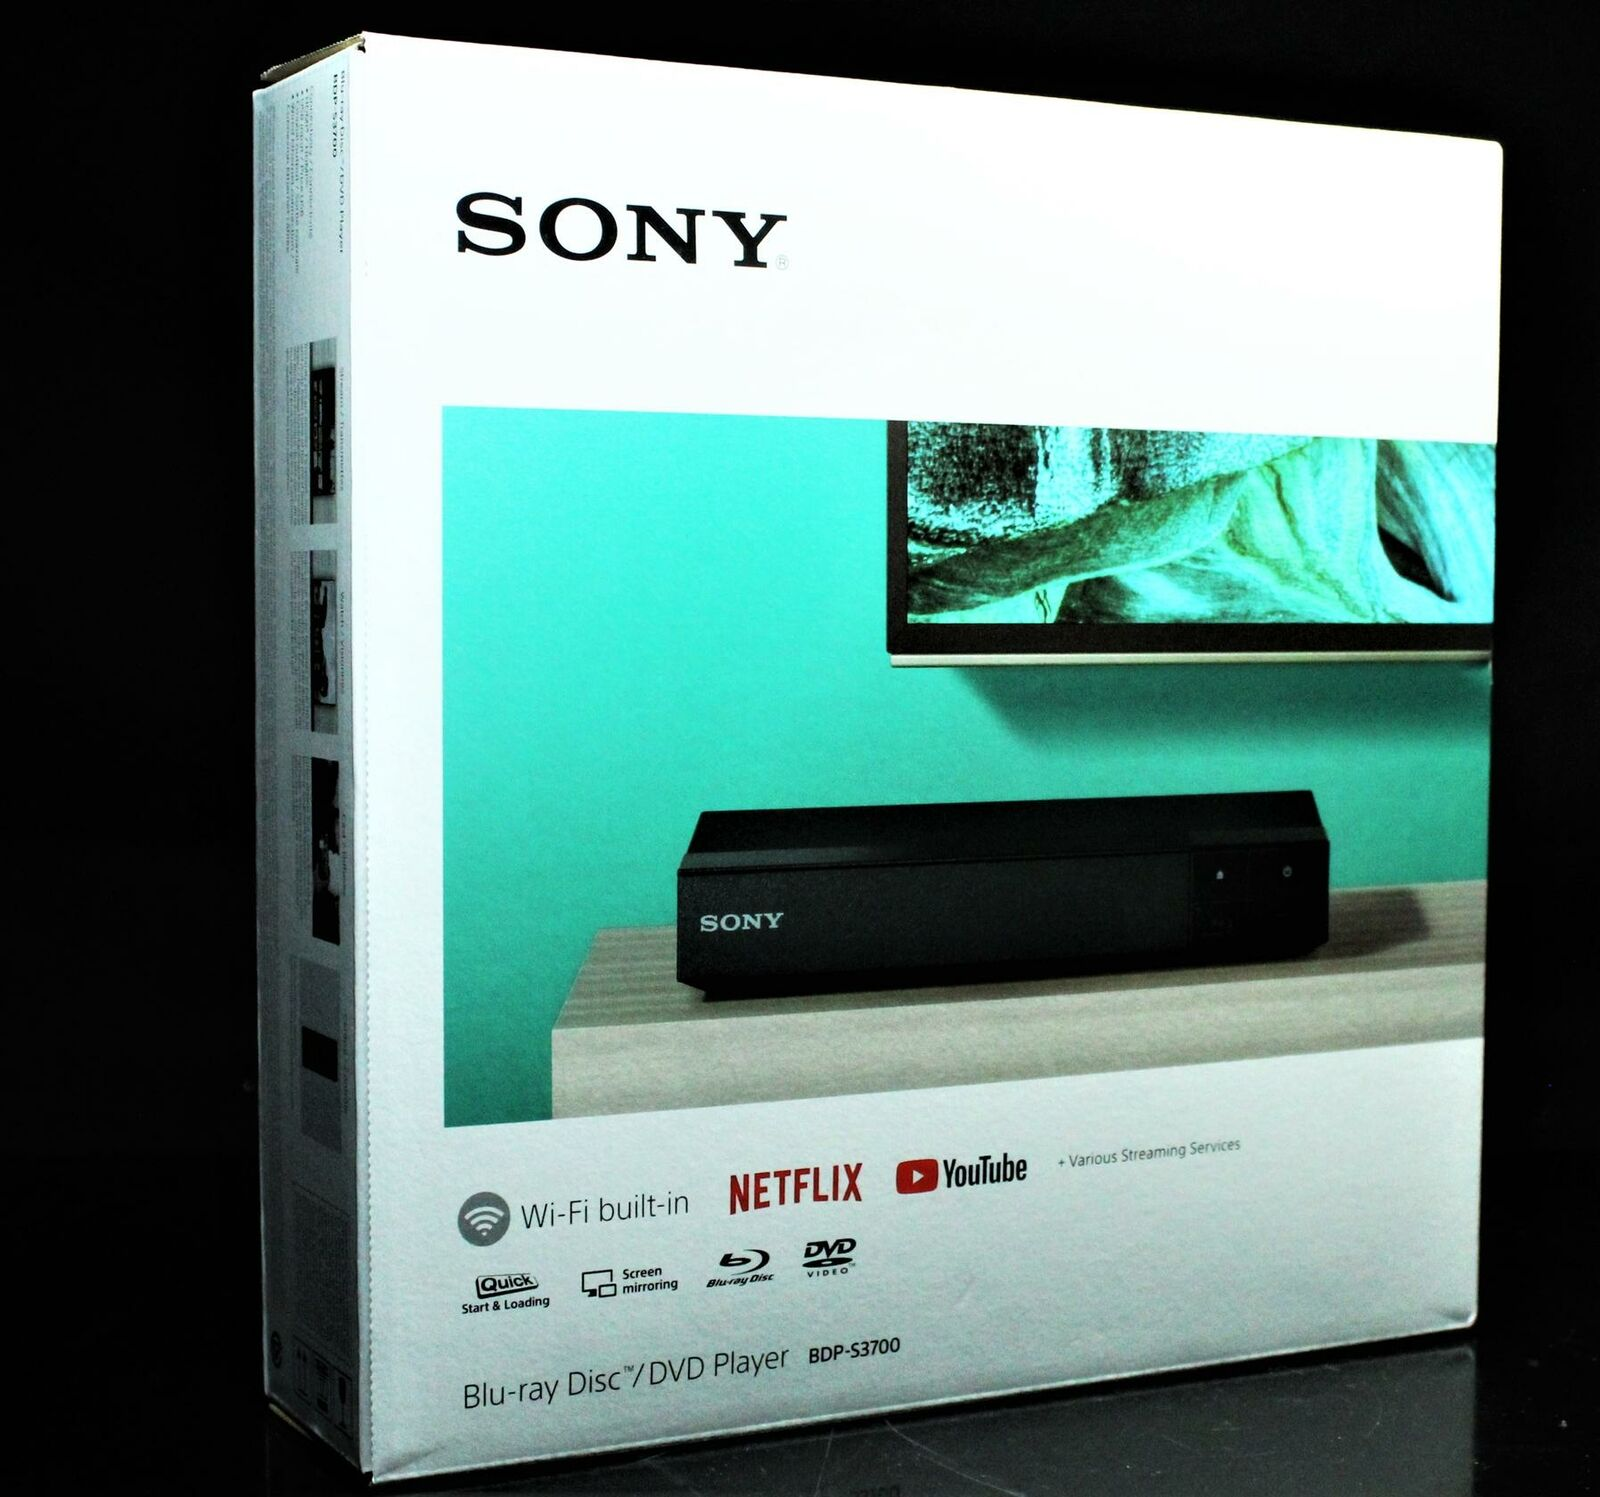 Sony BDP-S3700 Home Theater Streaming Blu-Ray Player with Wi-Fi (Black) home player sony streaming theater with